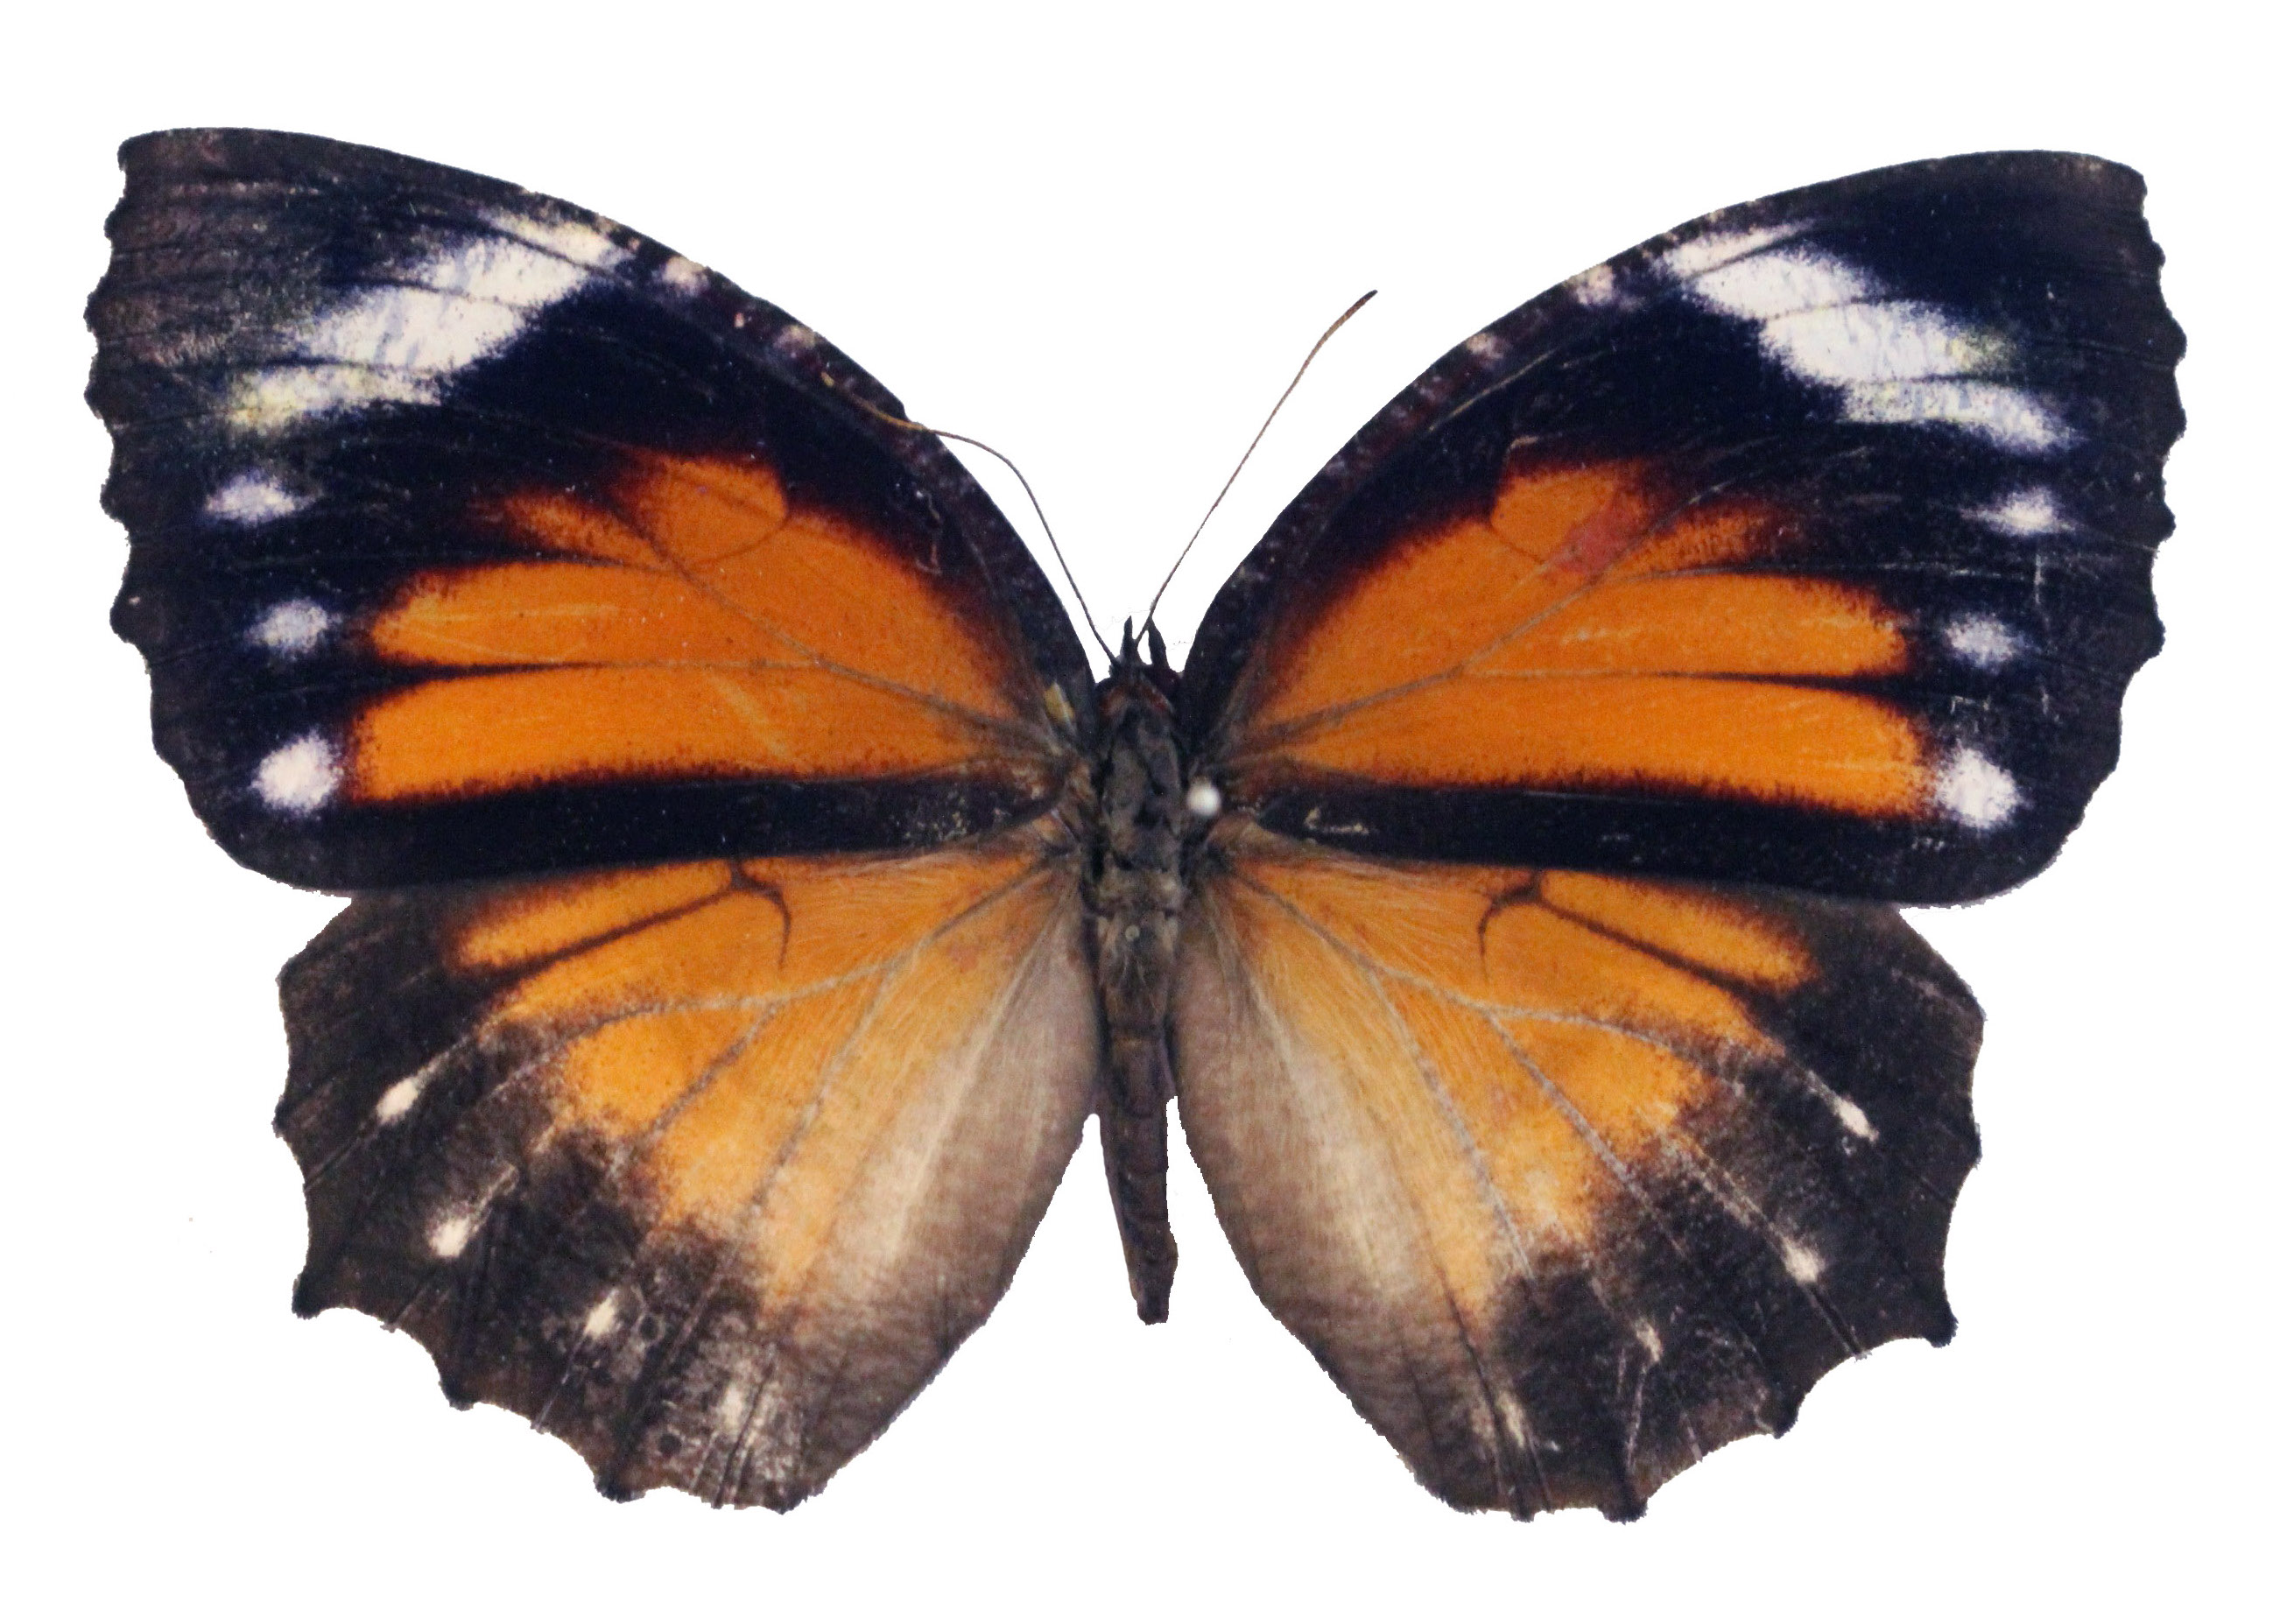 A female Elymnias hypermnestra tinctoria, one of the butterflies studied for its pigment